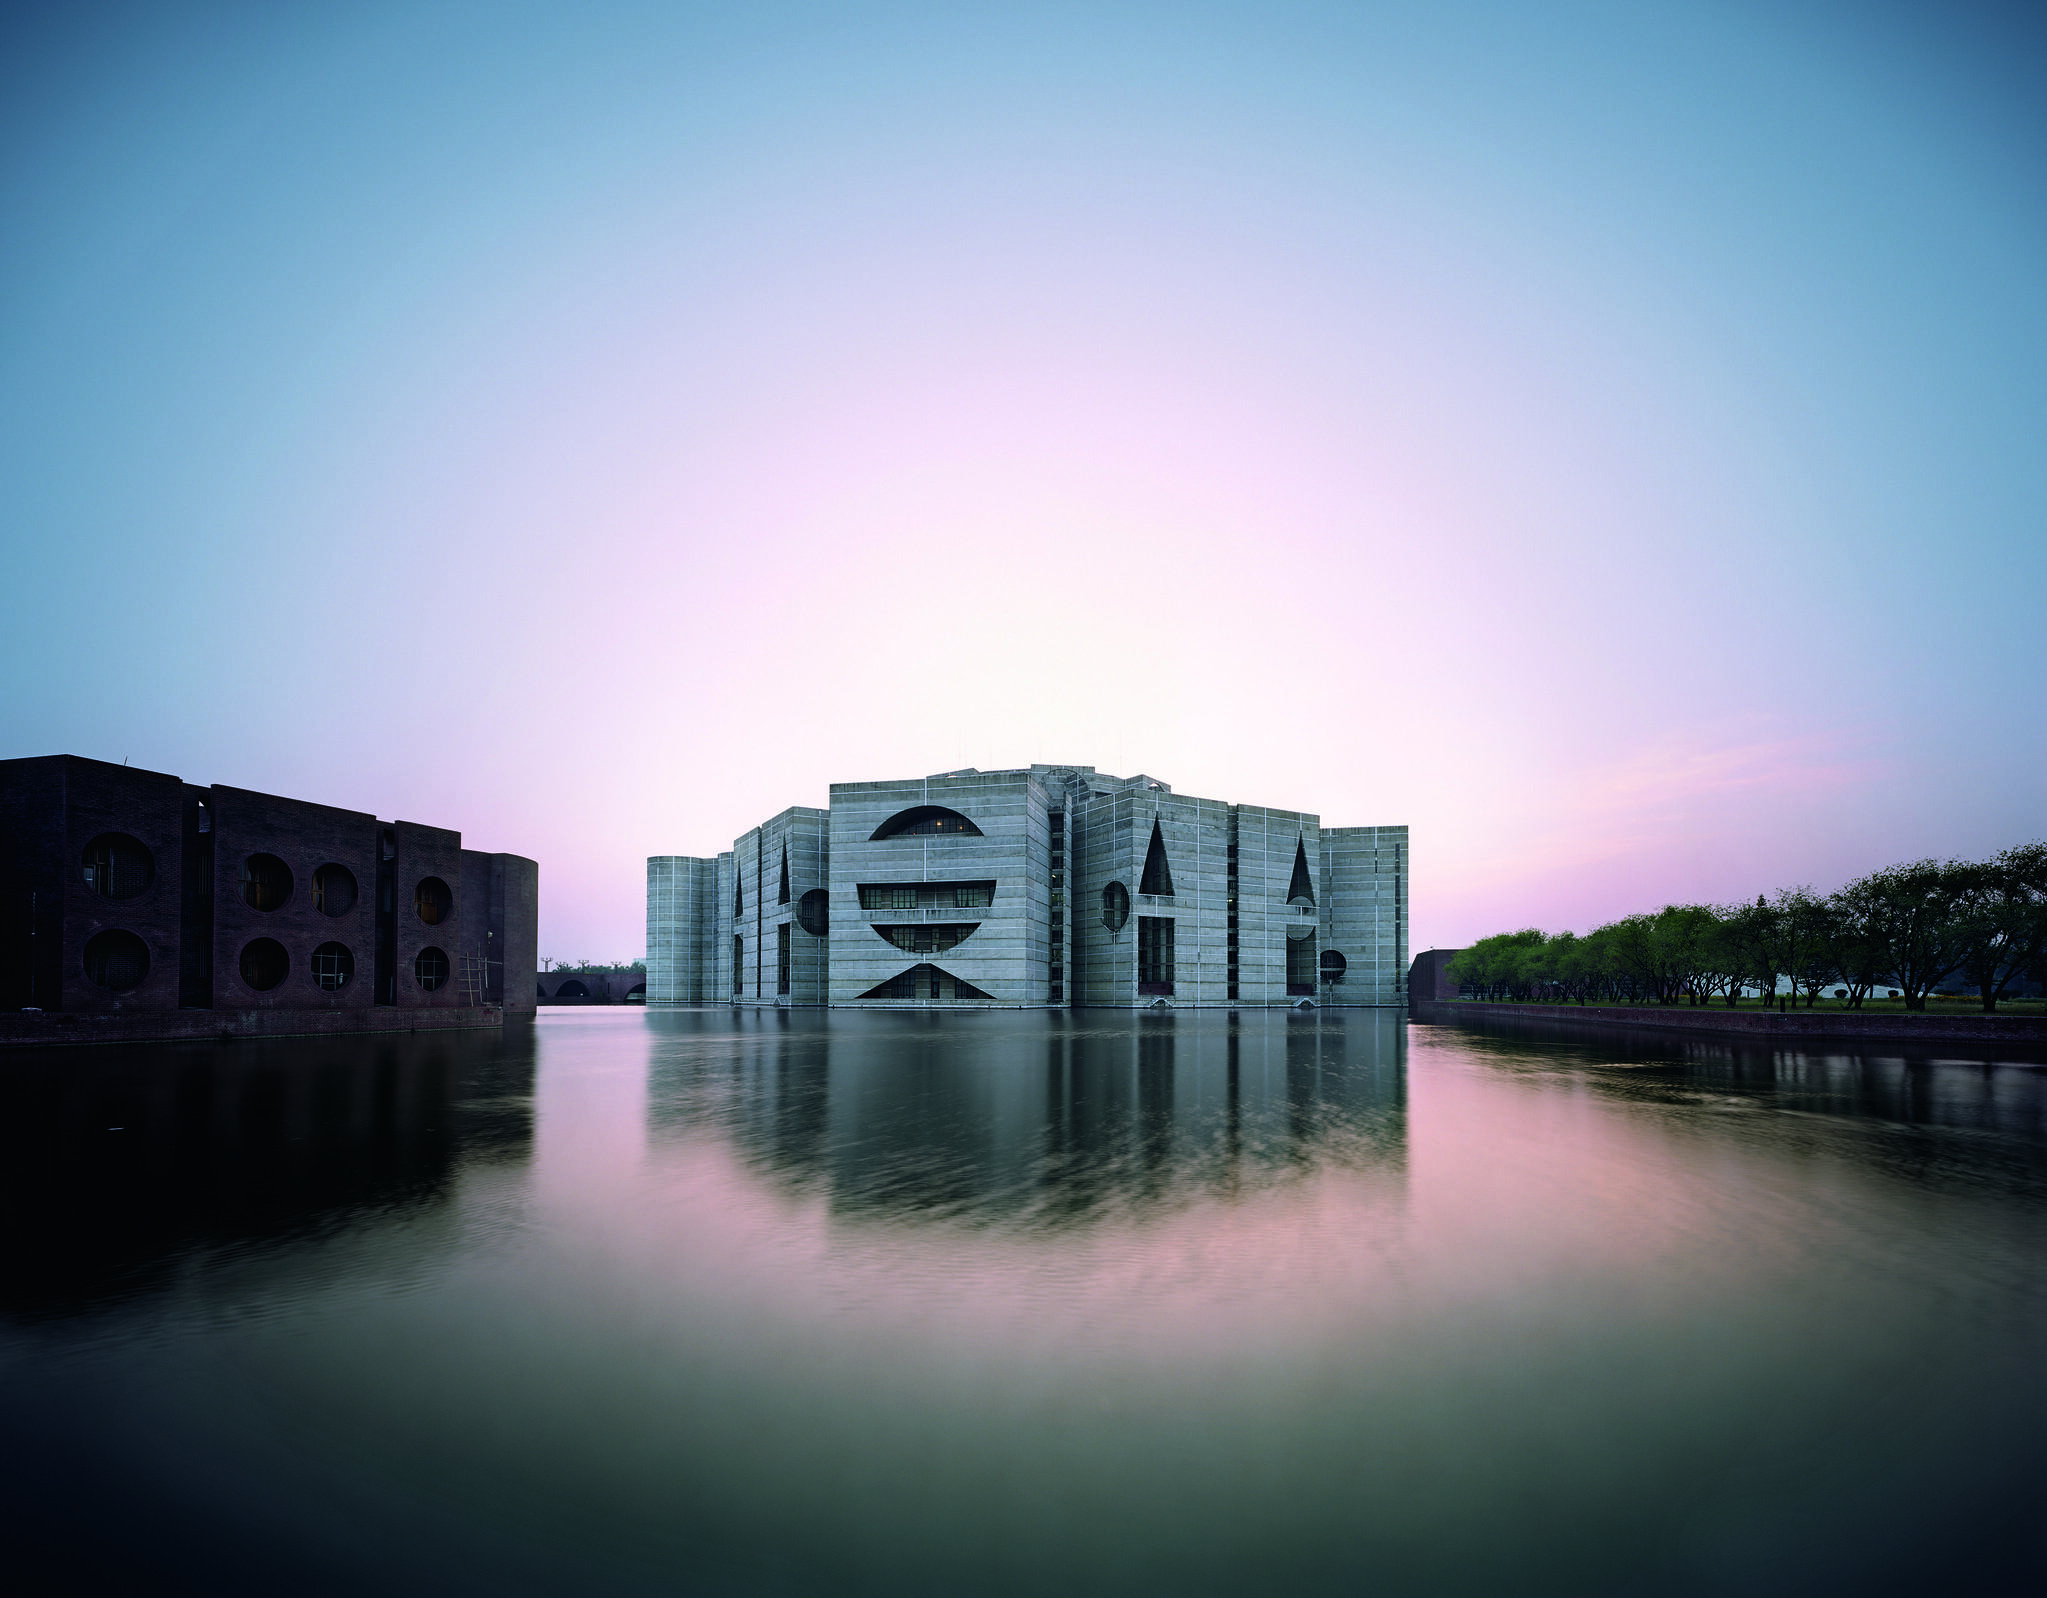 dhaka bangladesh national assembly building